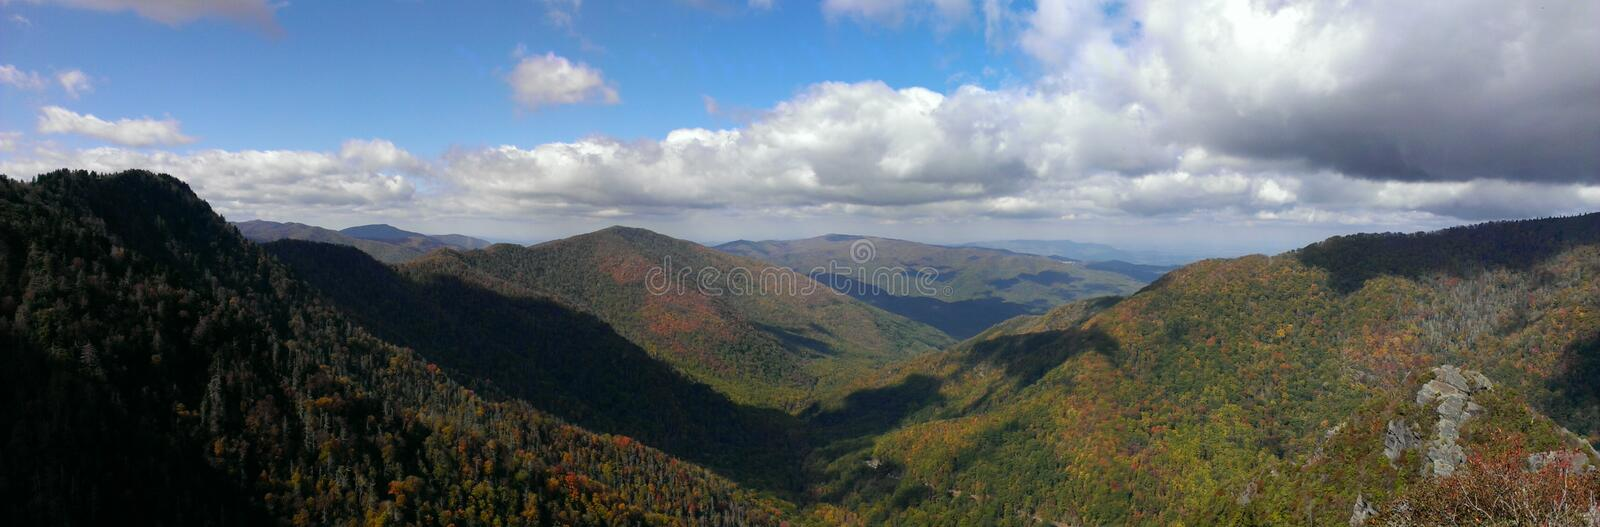 View from Chimney Tops in the Great Smoky Mountains National Park royalty free stock photo